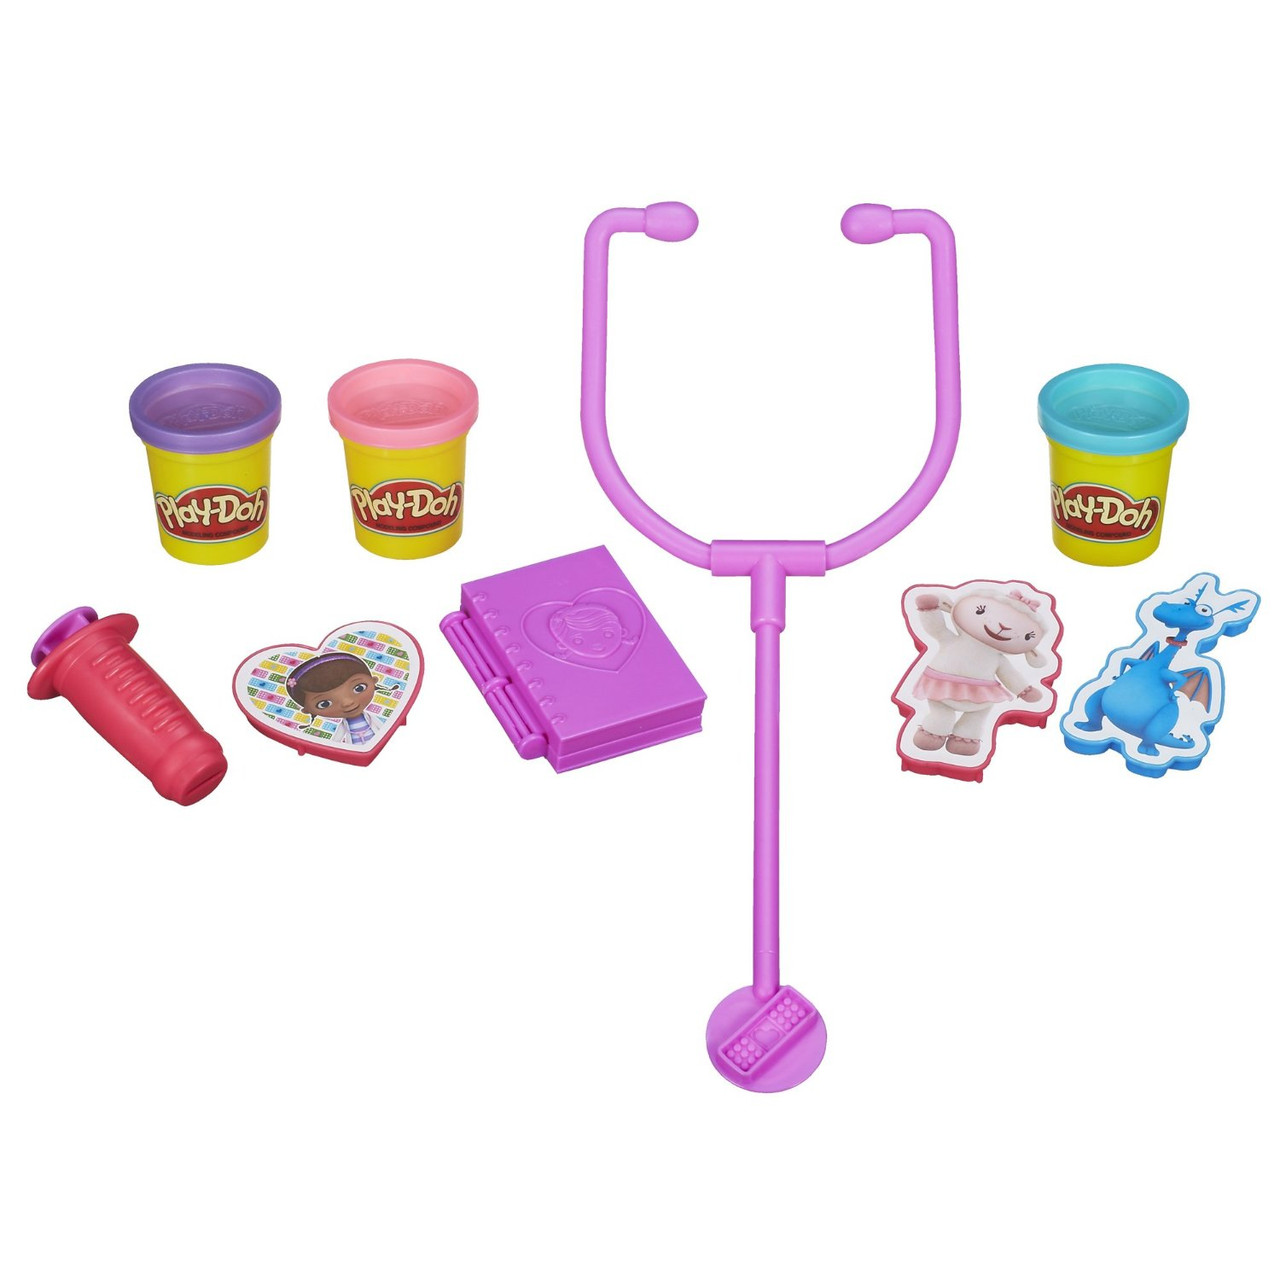 Play-Doh плей до набор доктор плюшева Doctor Kit Featuring Doc McStuffins